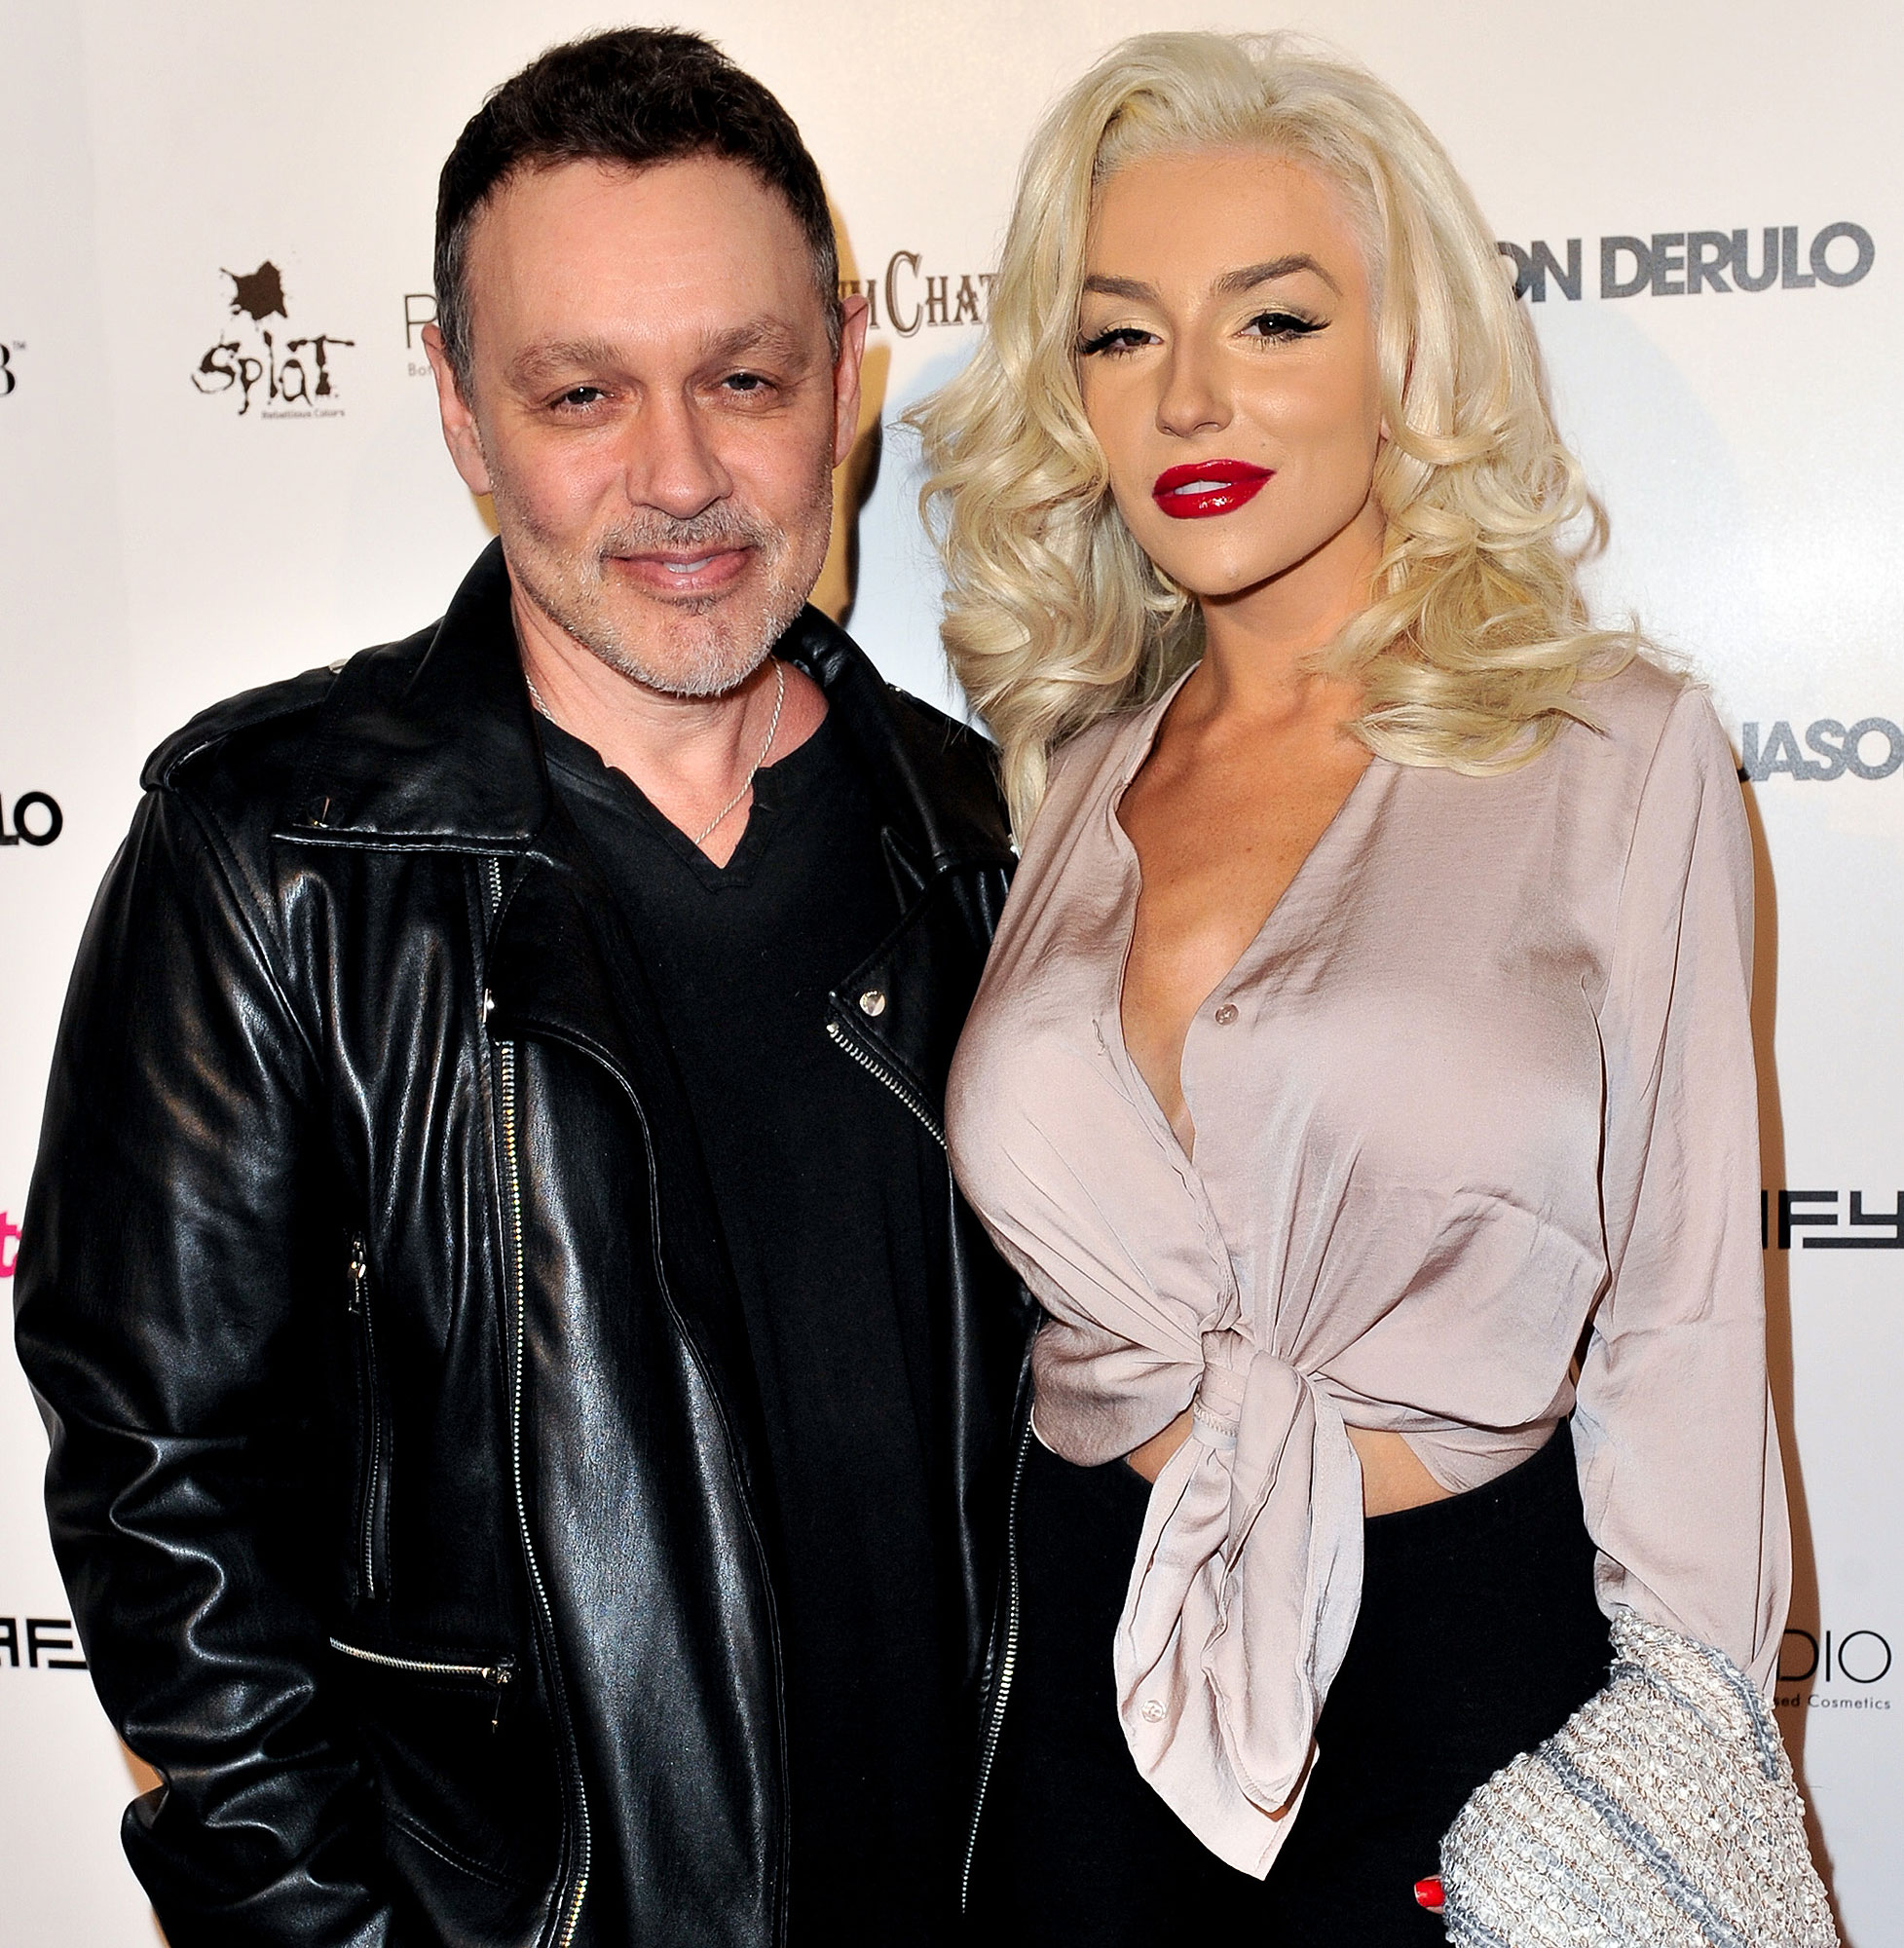 Doug with his ex-wife Courtney Stodden